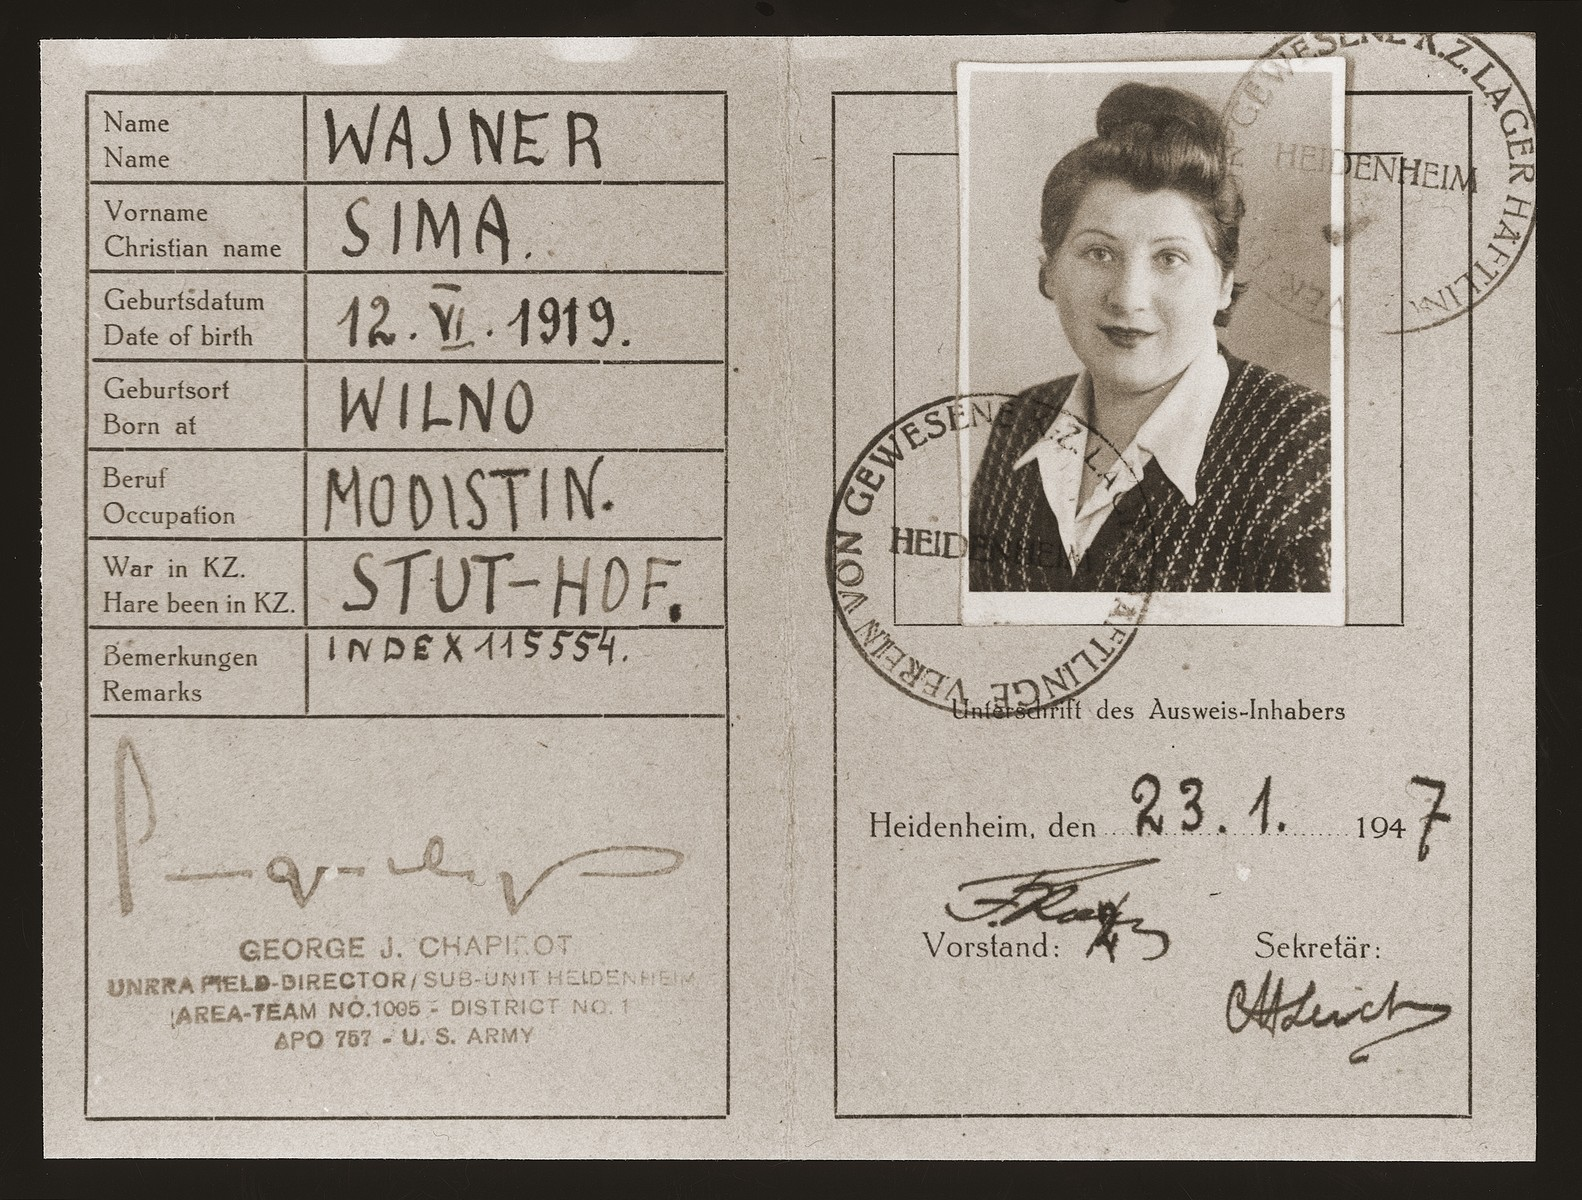 Inside page of an identification card issued to Sima Wajner, a former Jewish concentration camp prisoner now resident at the Heidenheim displaced persons camp.